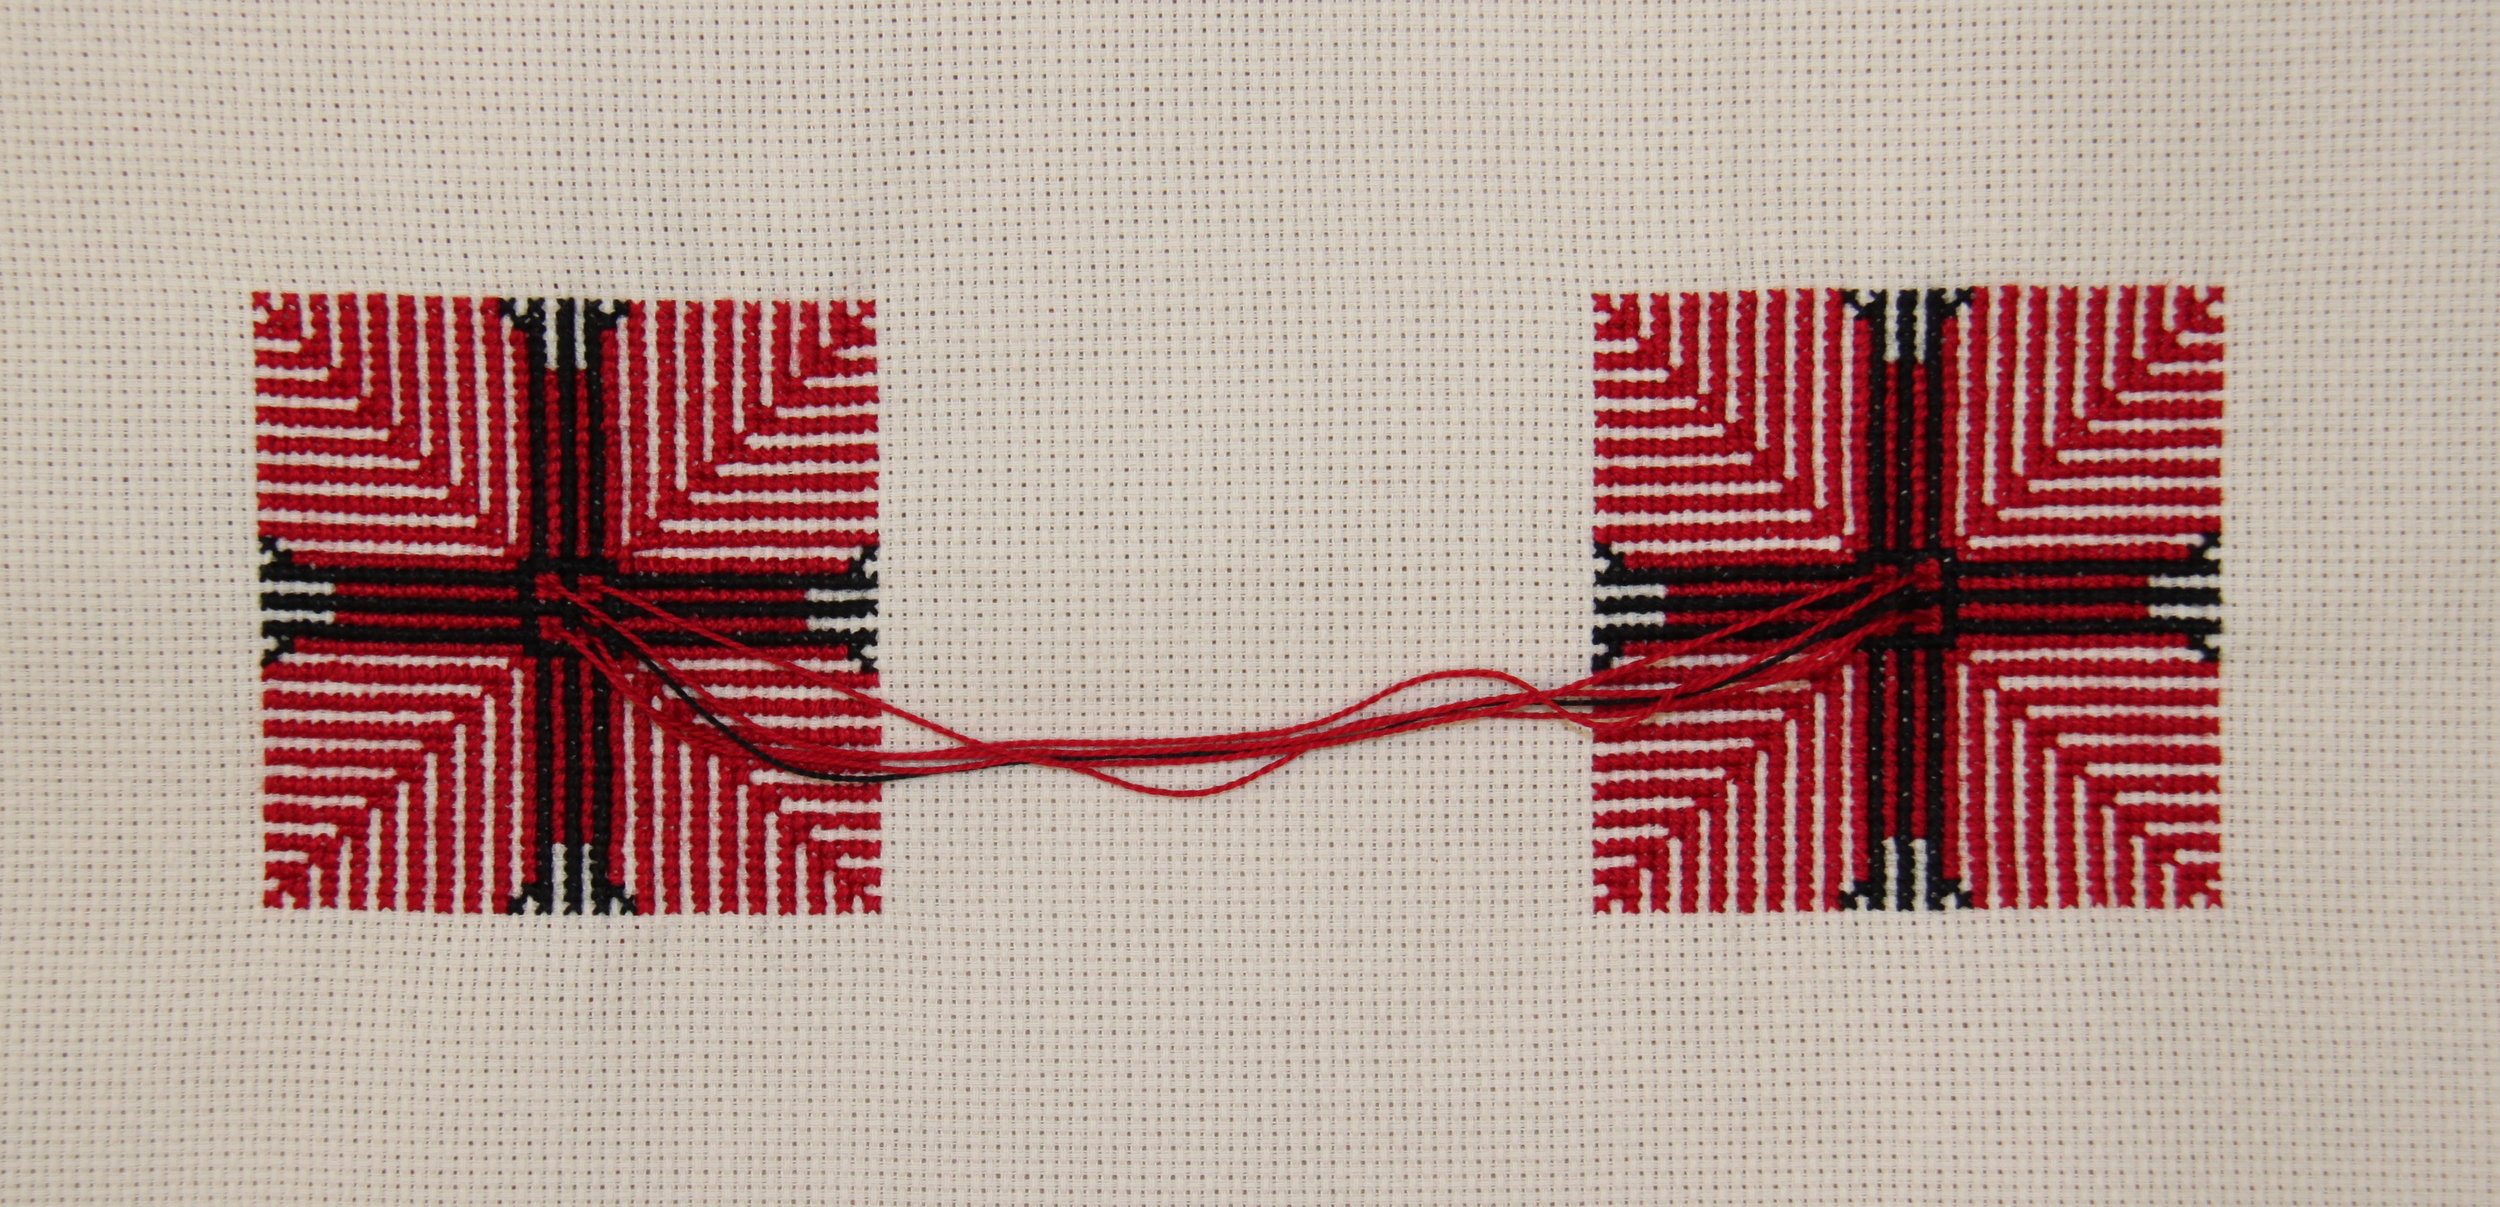 ENTANGLEMENT  Cotton thread on cotton fabric. 15 x 30 cm.  Through the medium of Palestinian cross-stitch hand embroidery, two identical yet separate motifs are joined to represent the concept of entanglement. The theory of quantum entanglement states that even if two particles are physically separated, they can still be connected. Karmic entanglement also speaks of the connection, regardless of space or time, between individuals, an individual to a group of people, or an individual to a belief. In this piece, traditional rules of the symbolic language of Palestinian embroidery are broken and a new translation of the motif is formulated. By understanding entanglement in visual or symbolic terms, an opportunity is created to consider the connecting force or frequency and recognise it as love. Threads emerge from and connect to the four squares centred in each motif, resembling the four chambers of the heart, removing the illusion of separateness while leaving behind the ultimate essence of oneness.